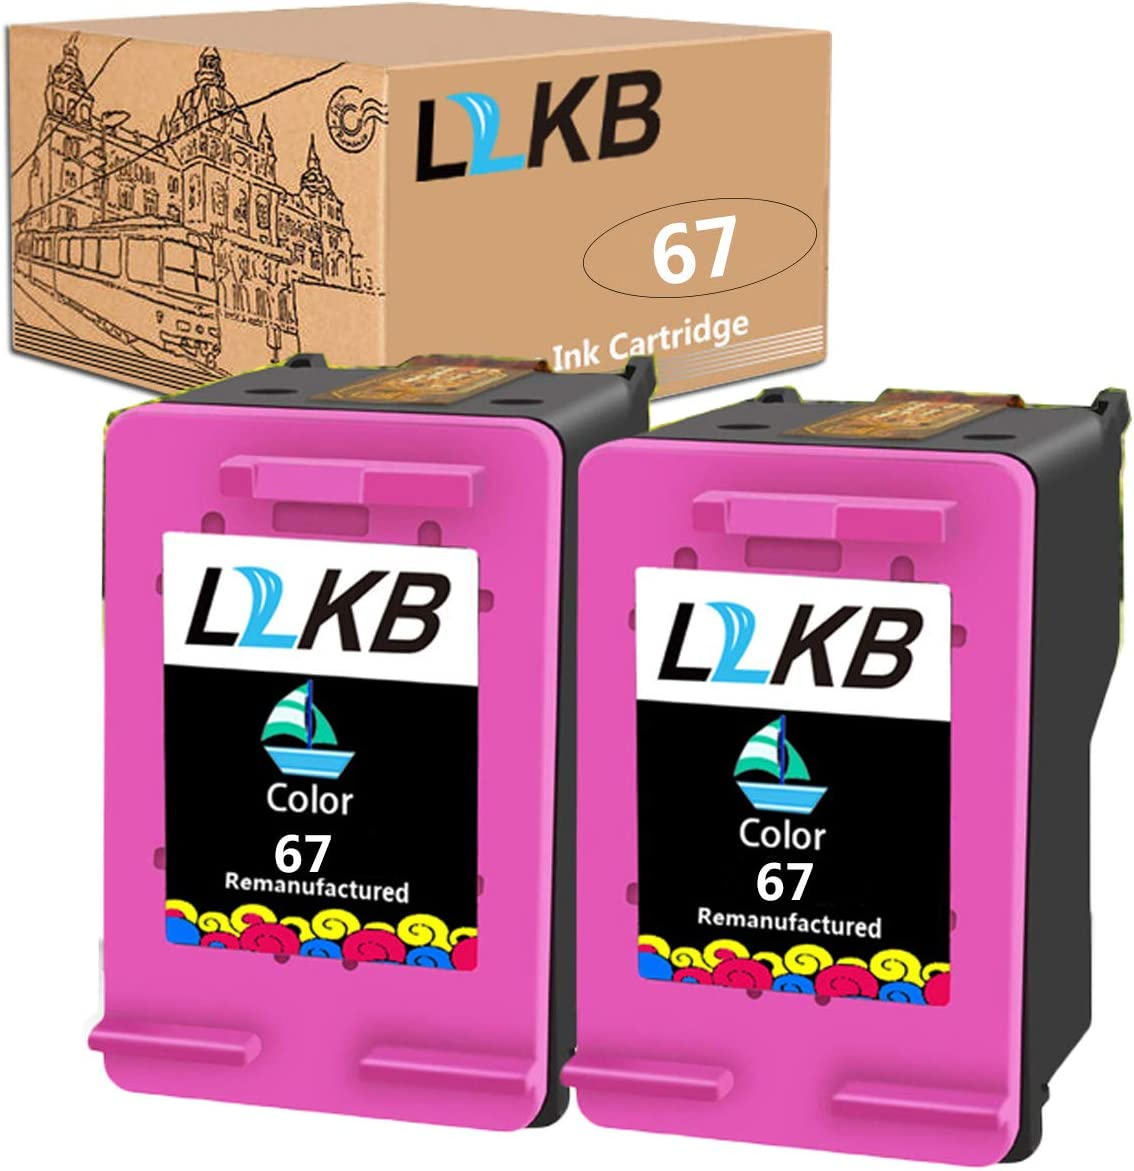 L2KB Remanufactured Ink Cartridge Replacement for HP 67 3YM56AN Color 2 Pack Ink Cartridge Envy 6052 6055 6058